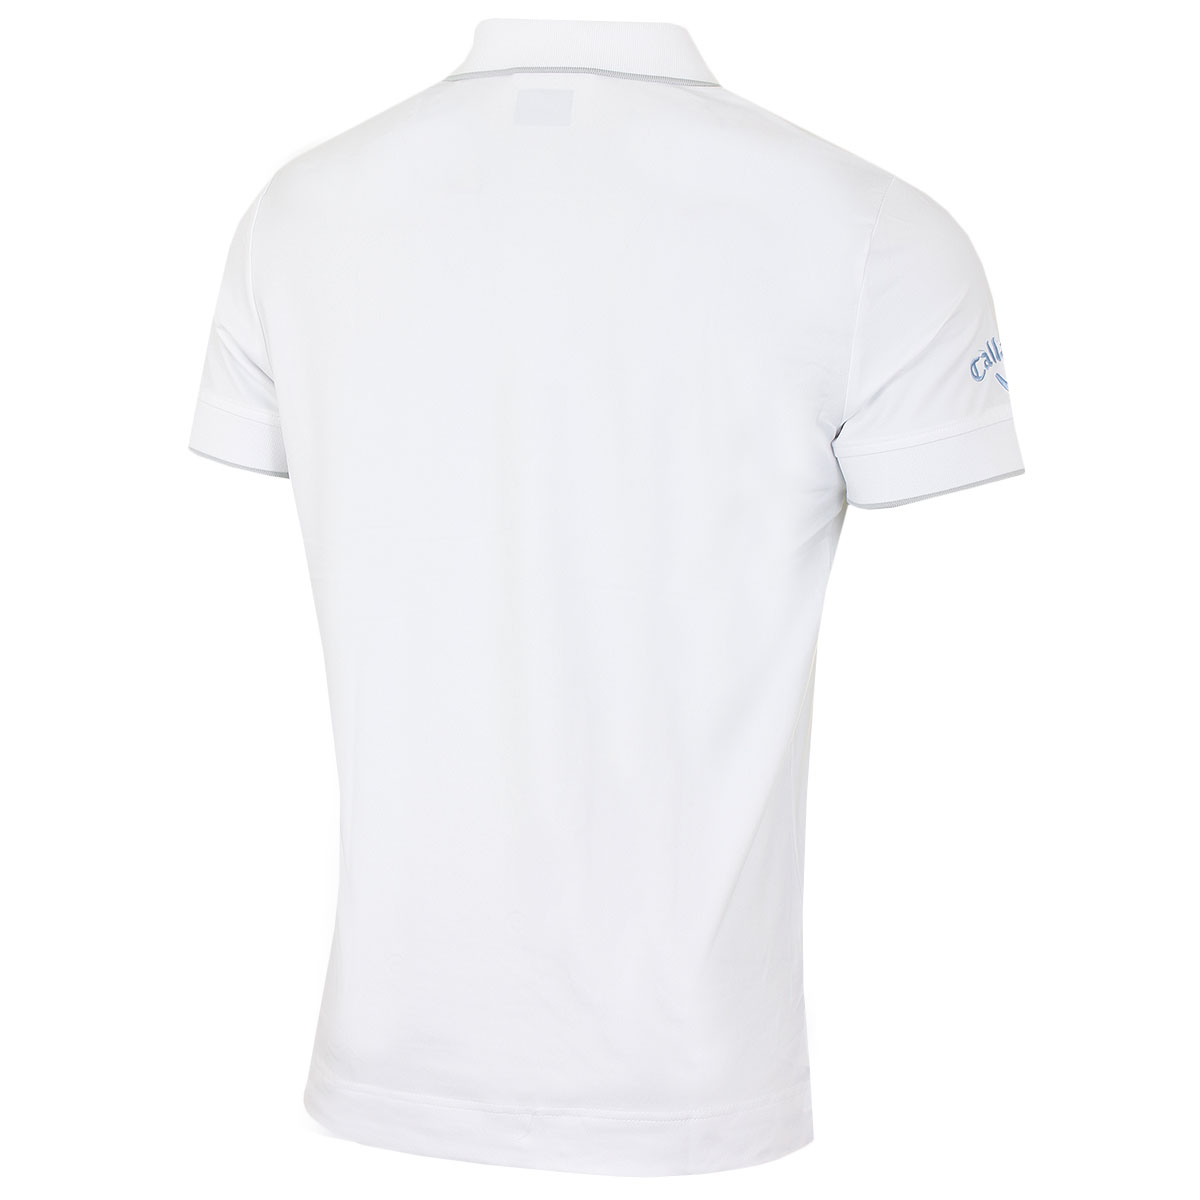 Callaway-Golf-Mens-X-Range-Stretch-Chest-Piped-Polo-Shirt-60-OFF-RRP thumbnail 3